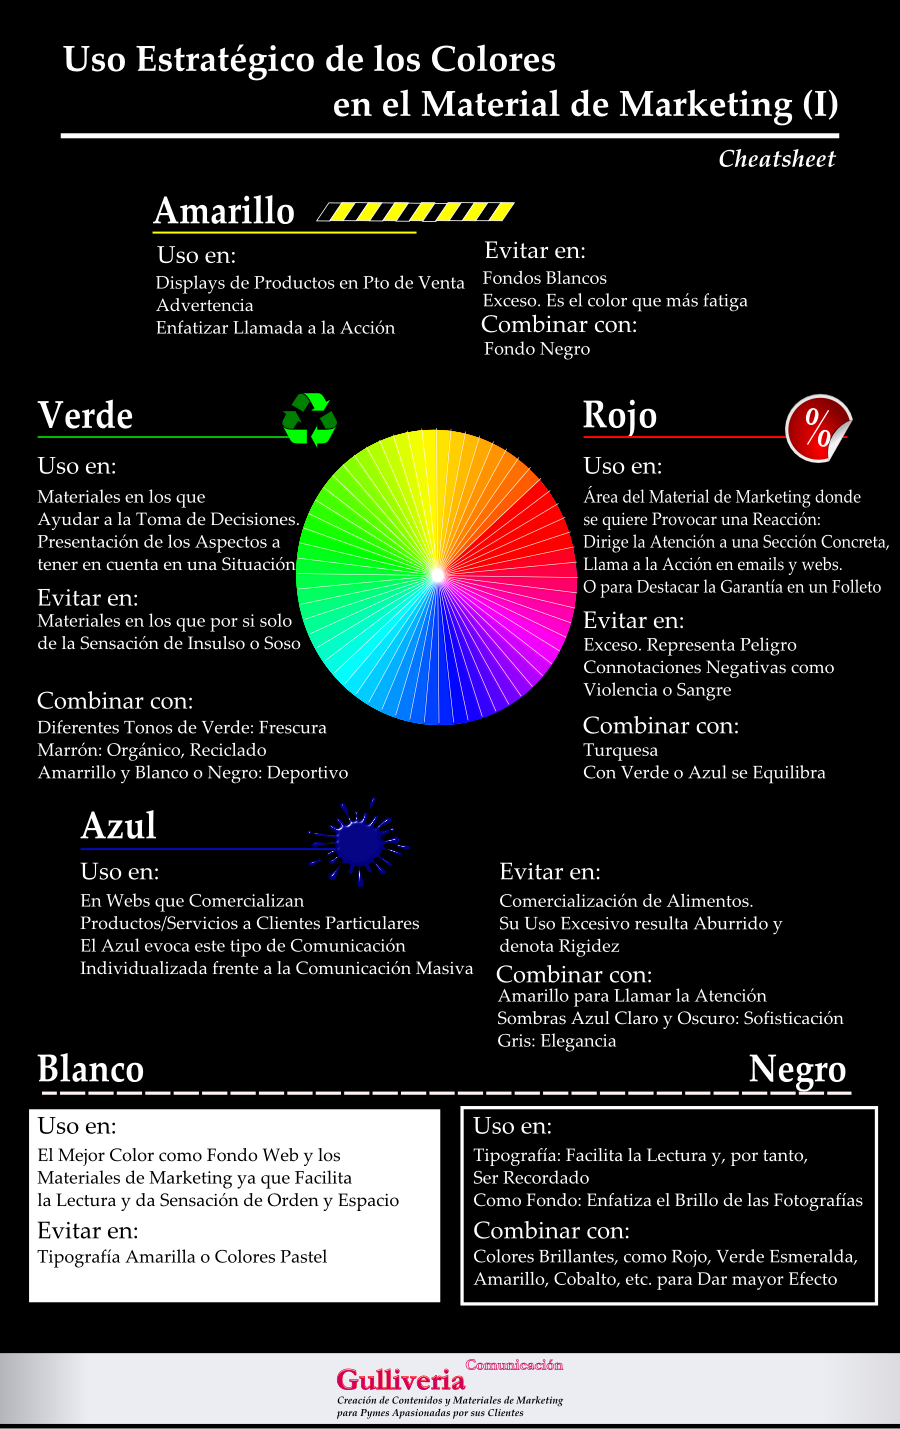 Color en los materiales de marketing. Gulliveria Comunicación. Imagen